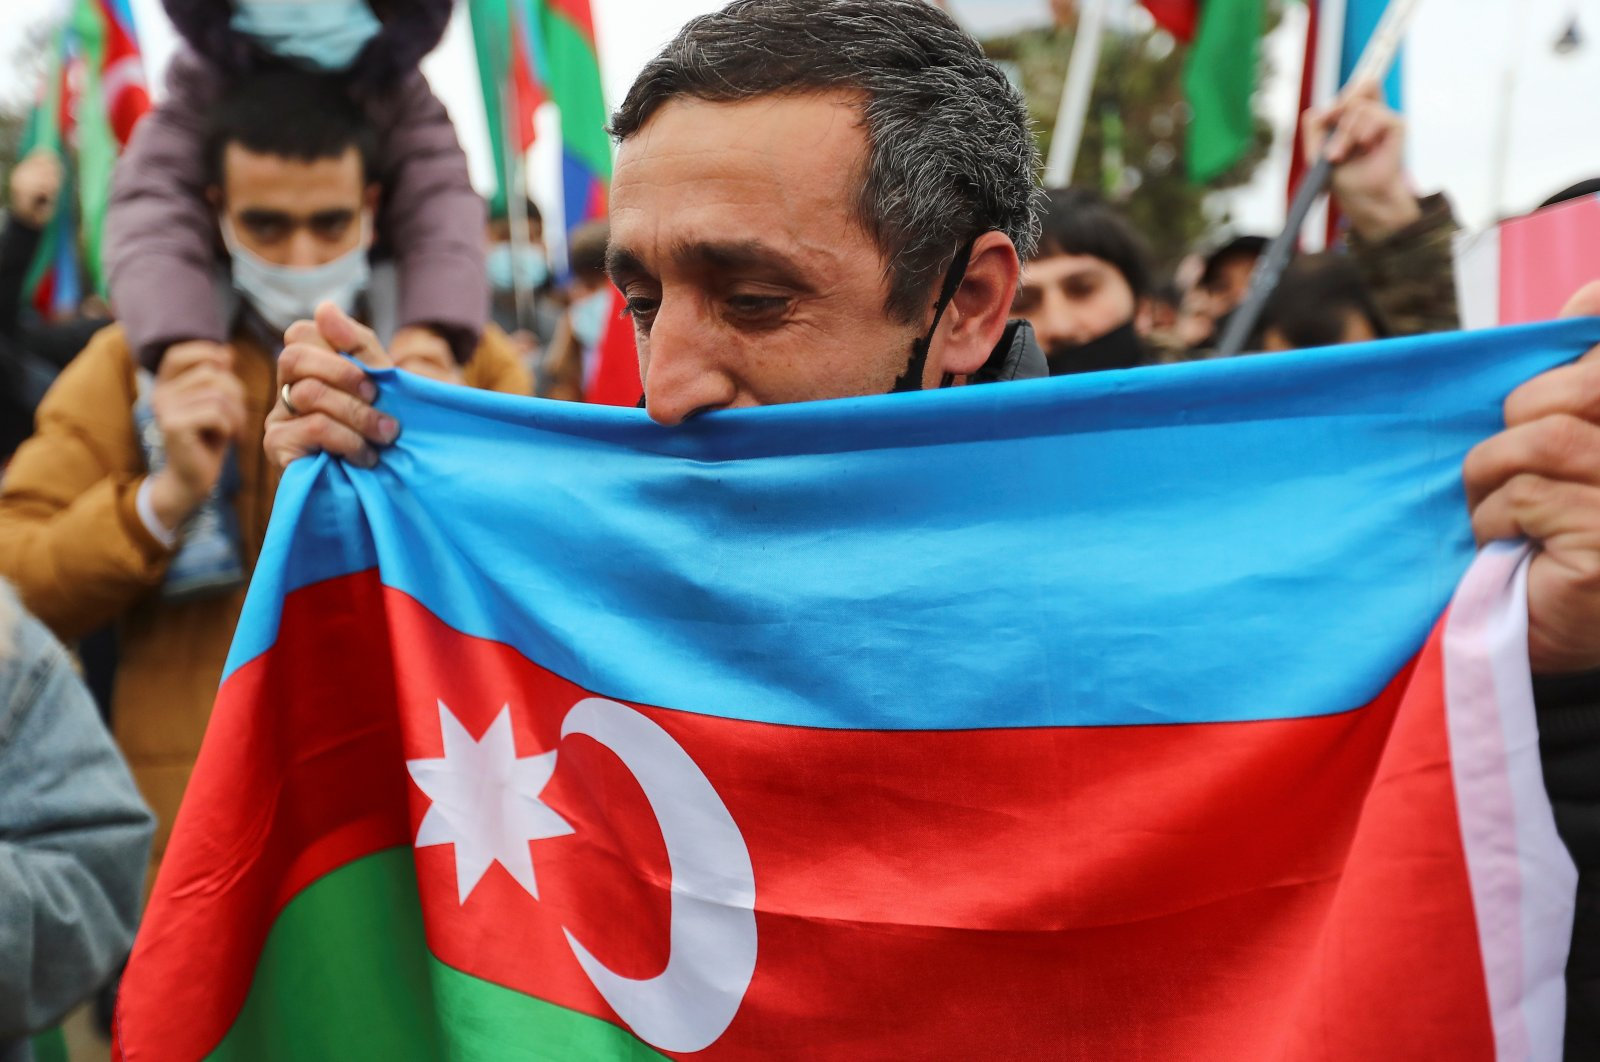 People take part in street celebrations after Lachin District reportedly came under the control of Azerbaijan's troops following a military conflict over Nagorno-Karabakh against ethnic Armenian forces and a further signing of a ceasefire deal, in Baku, Azerbaijan, Dec.1, 2020. (REUTERS)